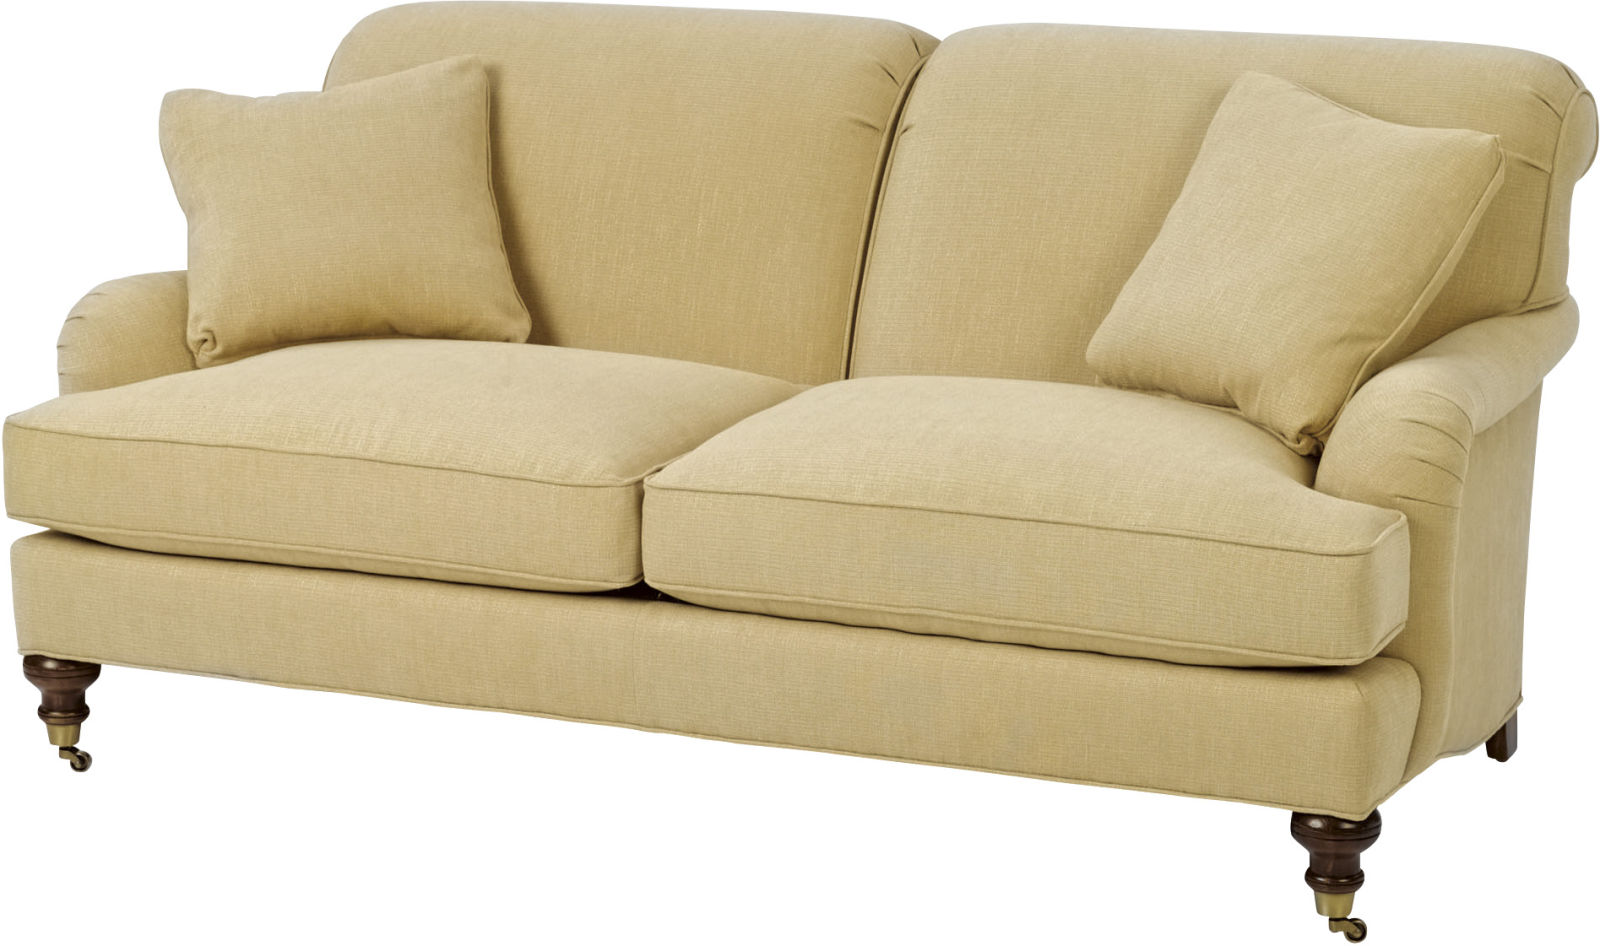 72 sofa cover 2 piece sectional sofas wesley hall furniture hickory nc product page 1186